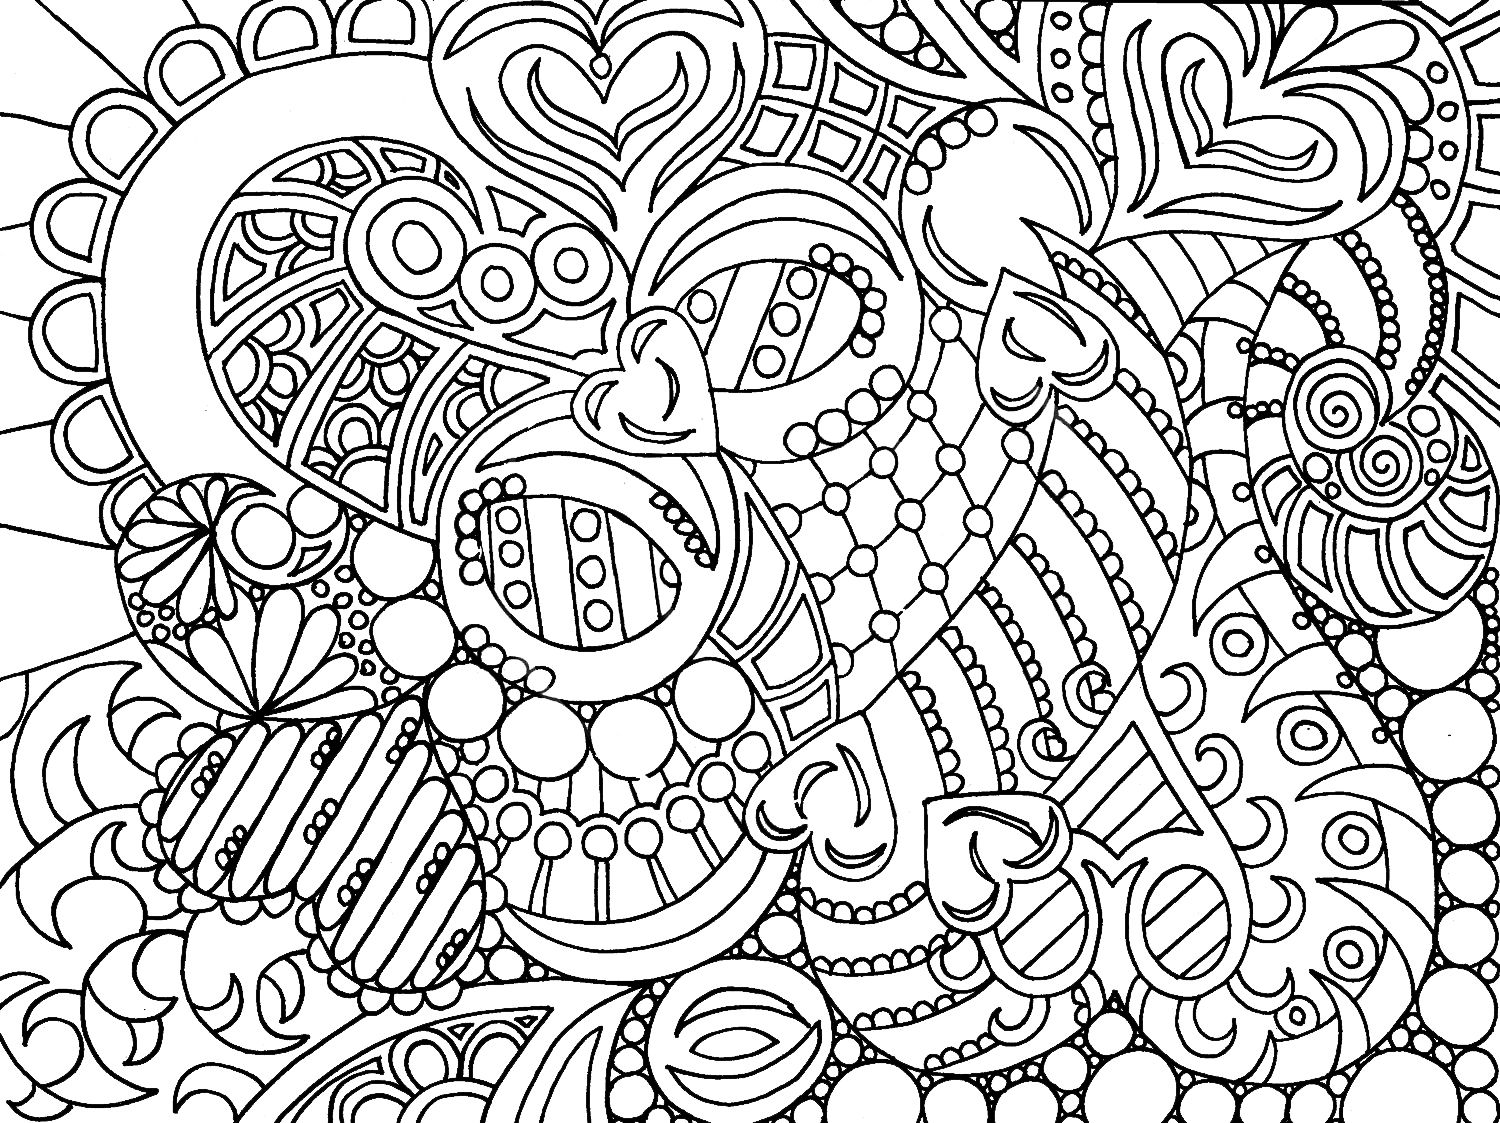 Explore printable adult coloring pages and more